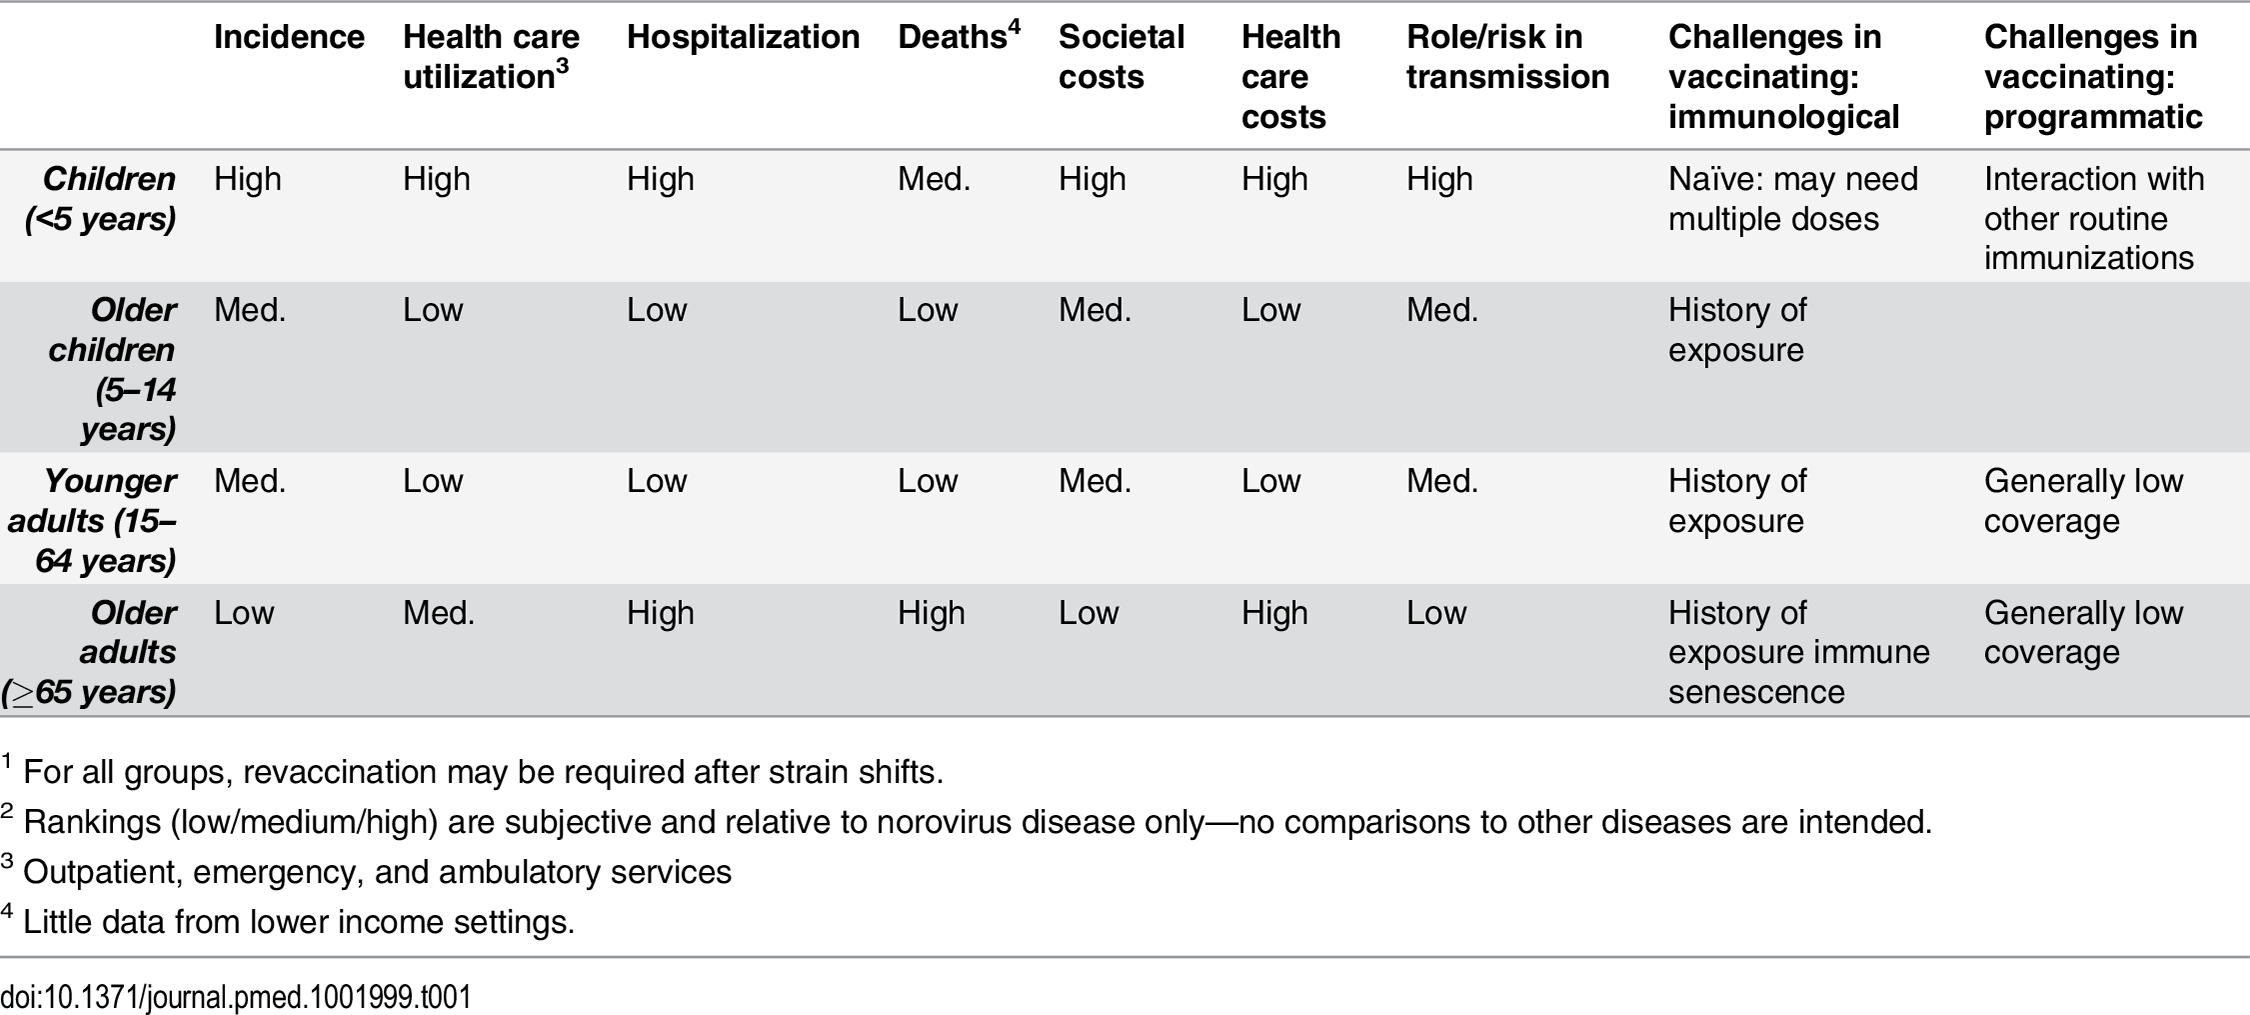 Epidemiological and economics characteristics of various age groups for considering norovirus vaccines<em class=&quot;ref&quot;><sup>1</sup></em><sup>,</sup><em class=&quot;ref&quot;><sup>2</sup></em>.